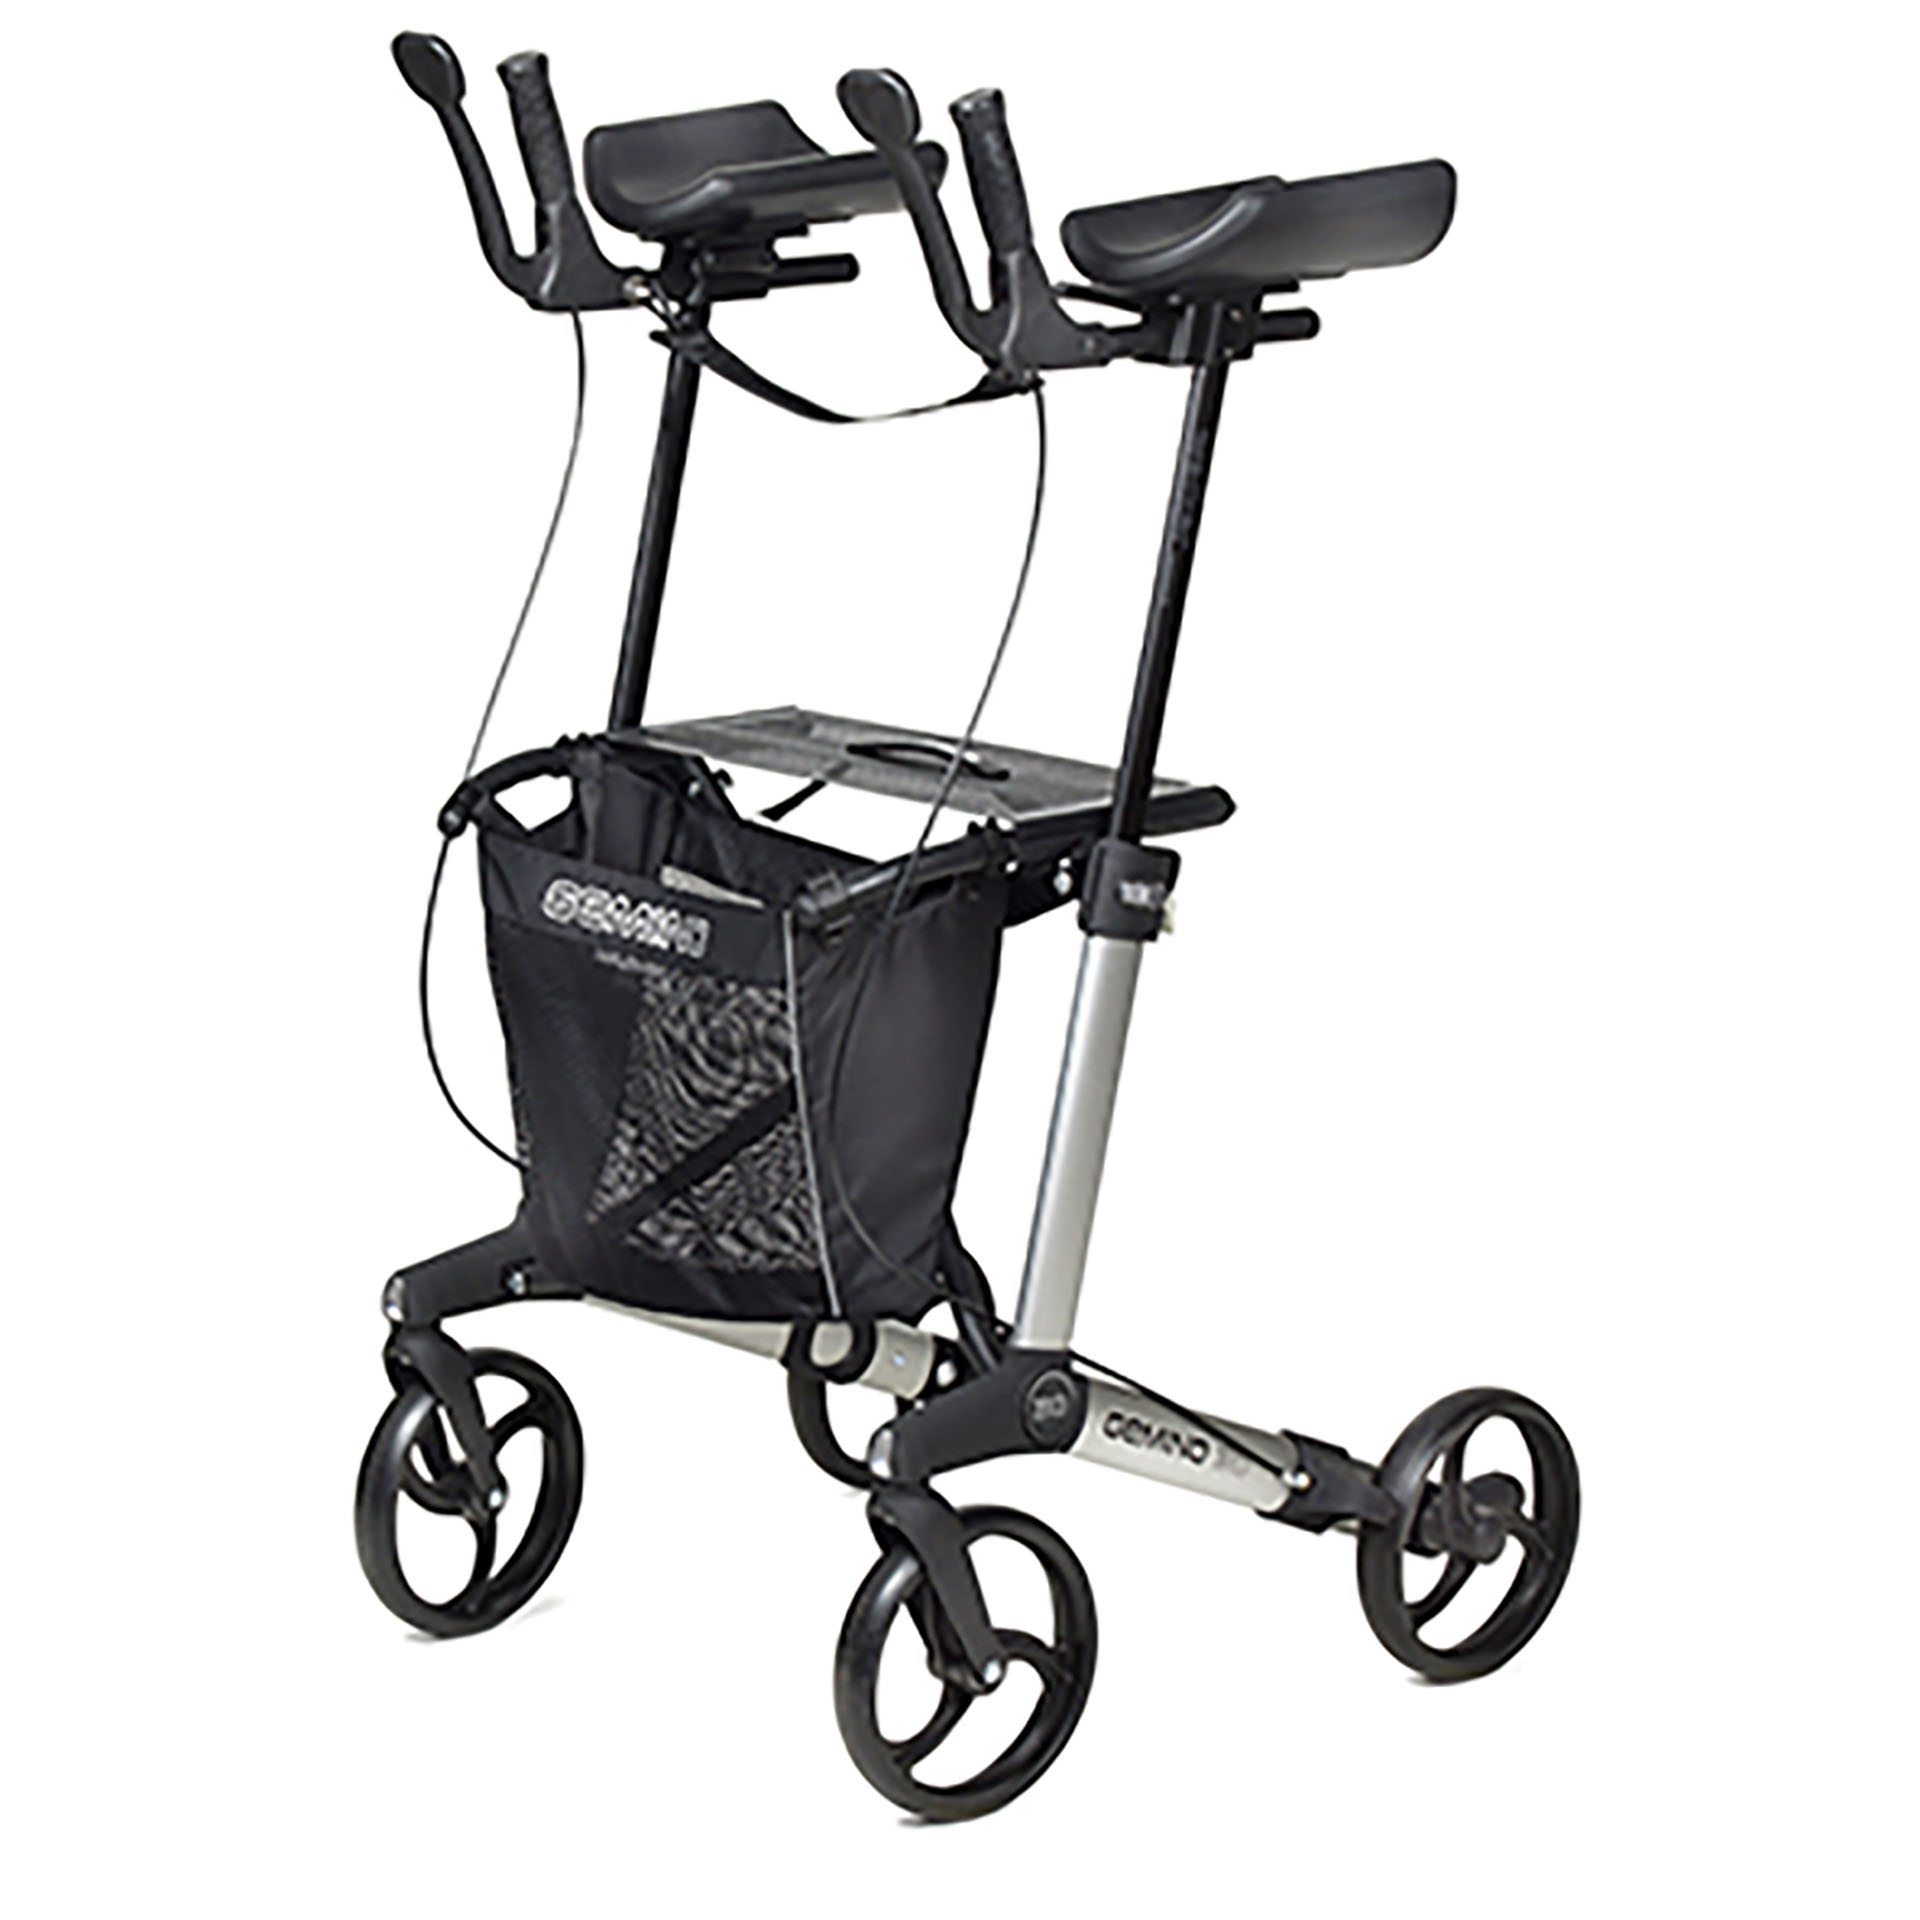 Gemino 30 Walker